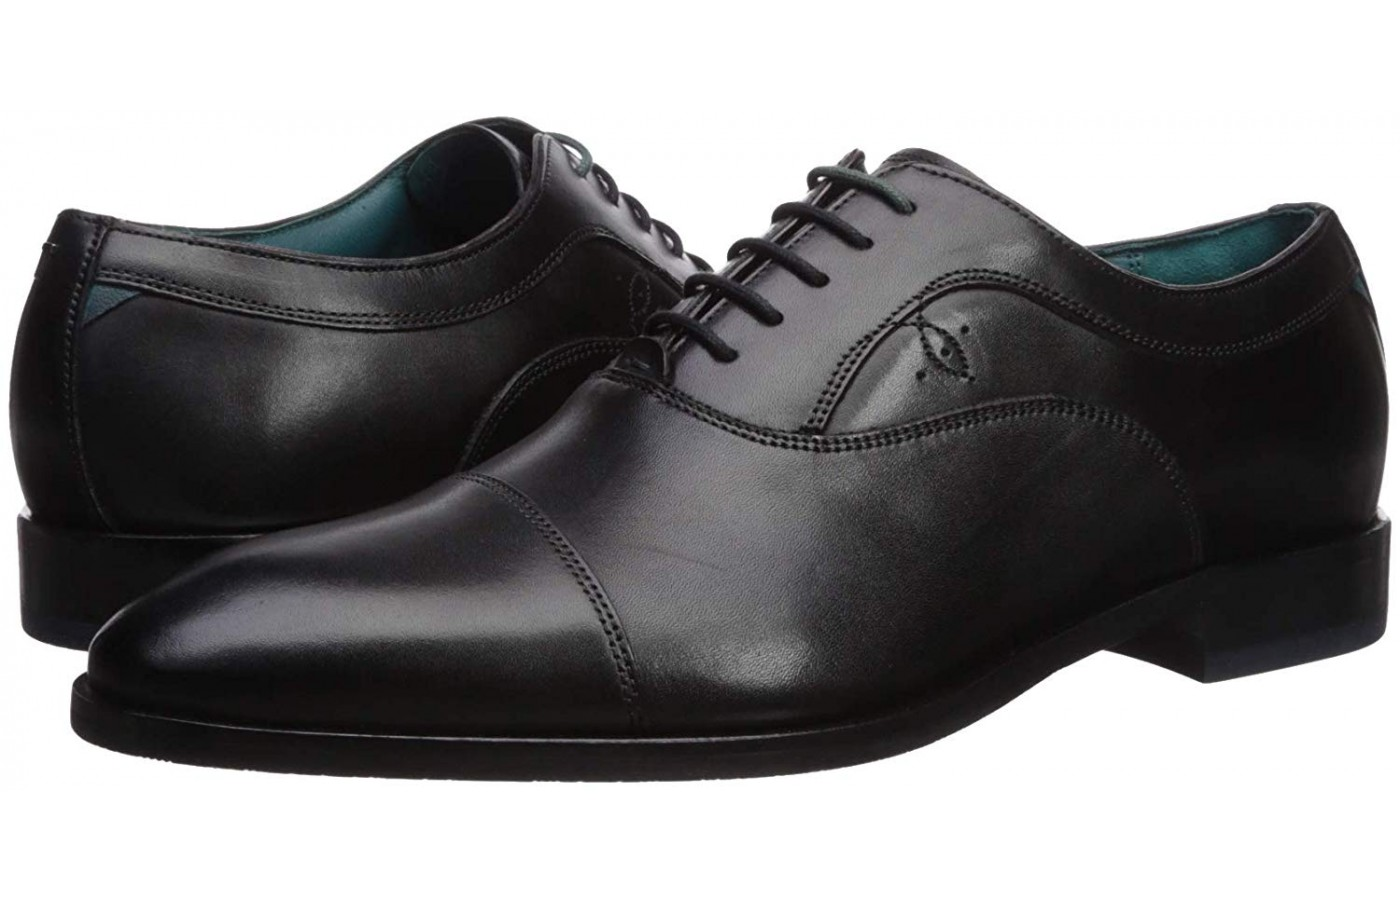 Ted Baker Fually Oxford pair